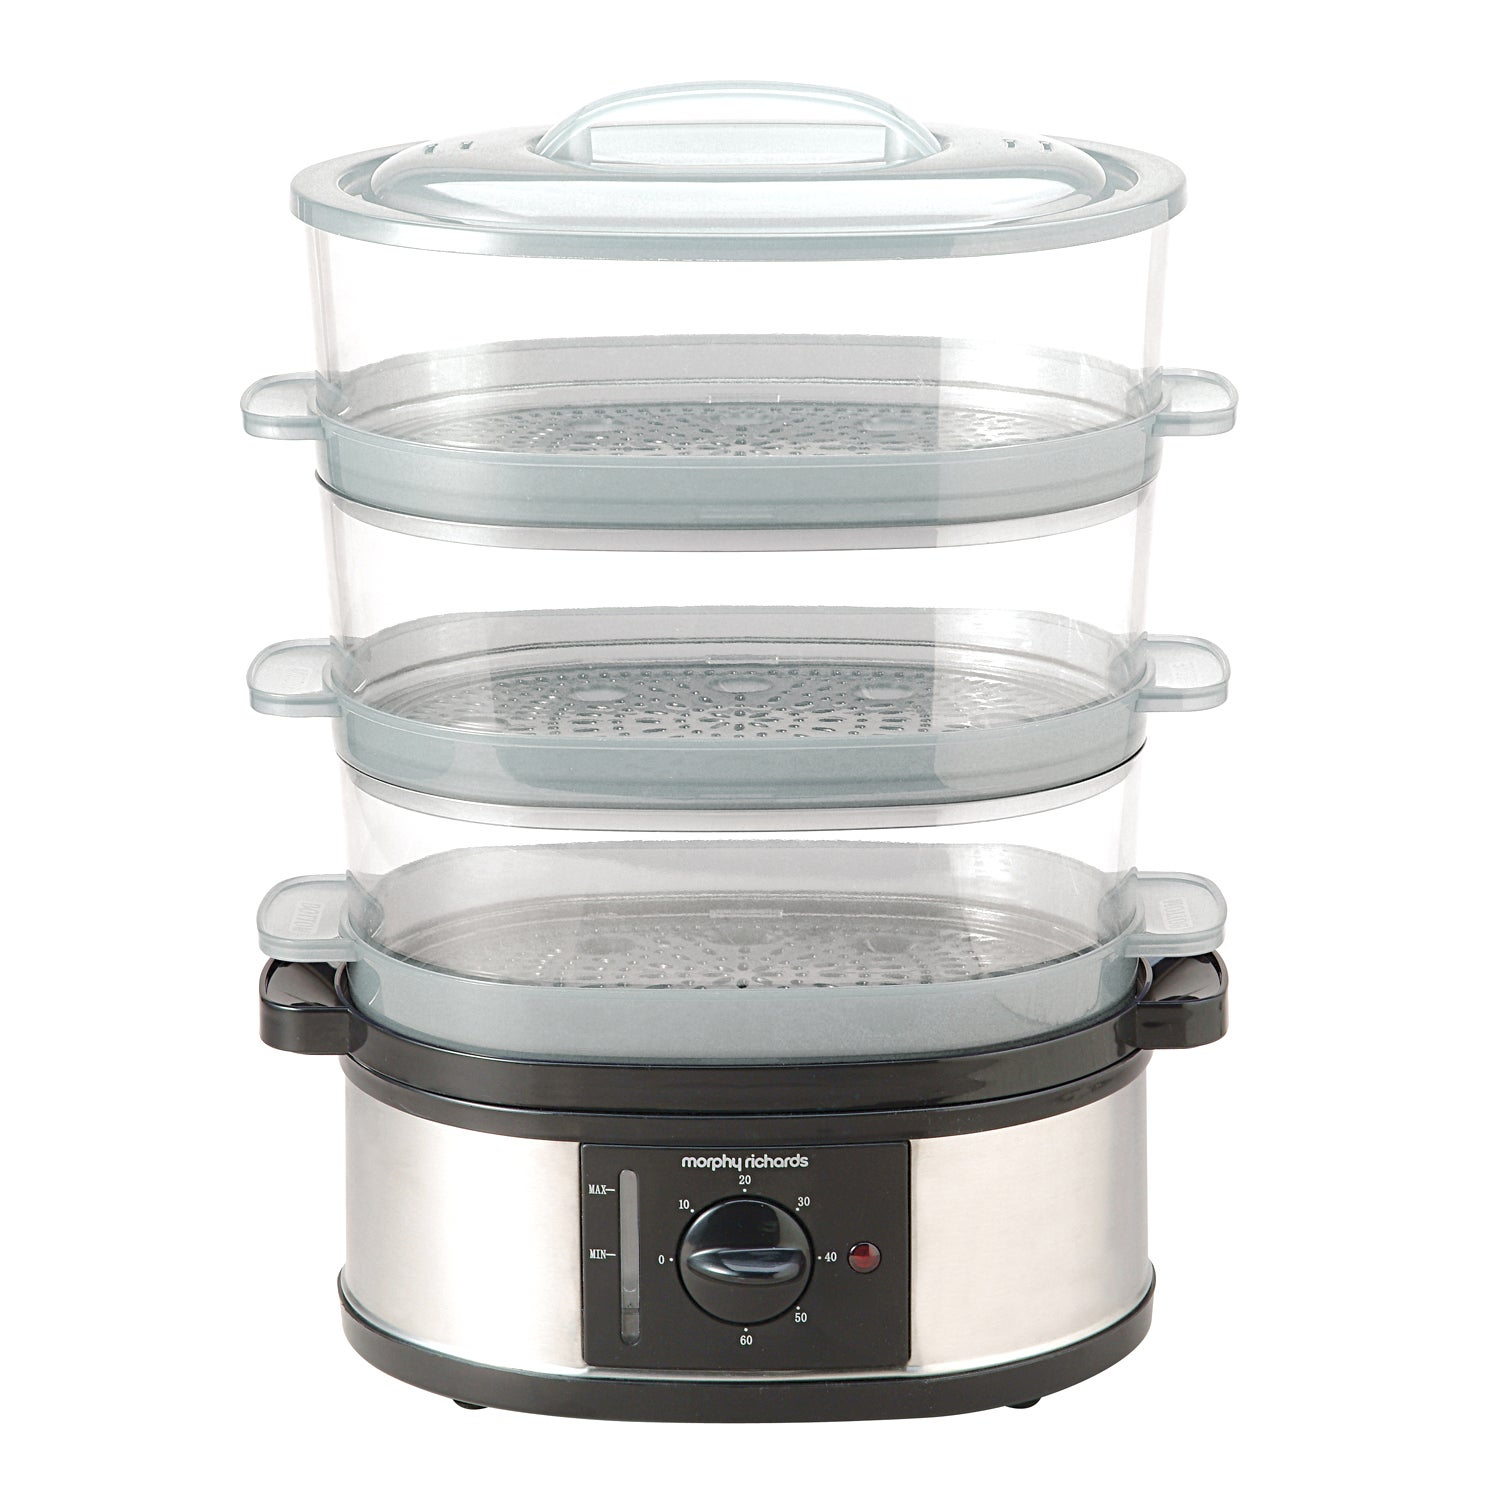 Morphy Richards 48755 3 Tier Food Steamer